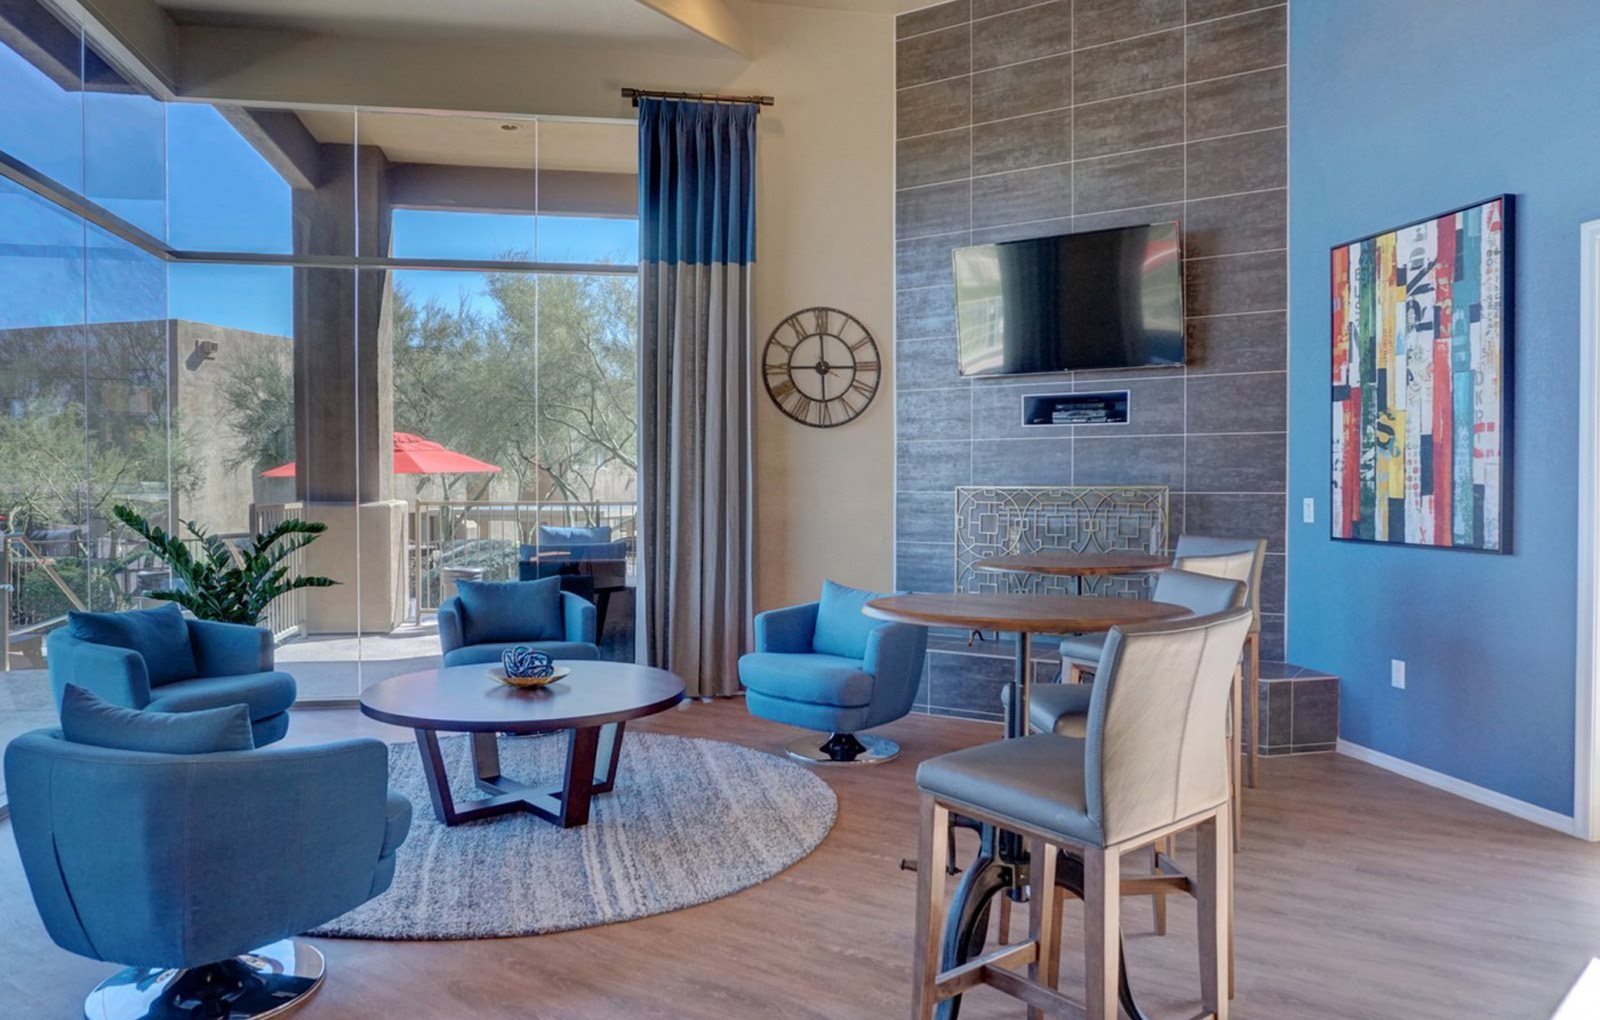 Leasing office at Ridge View Apartments in Fountain Hills, AZ